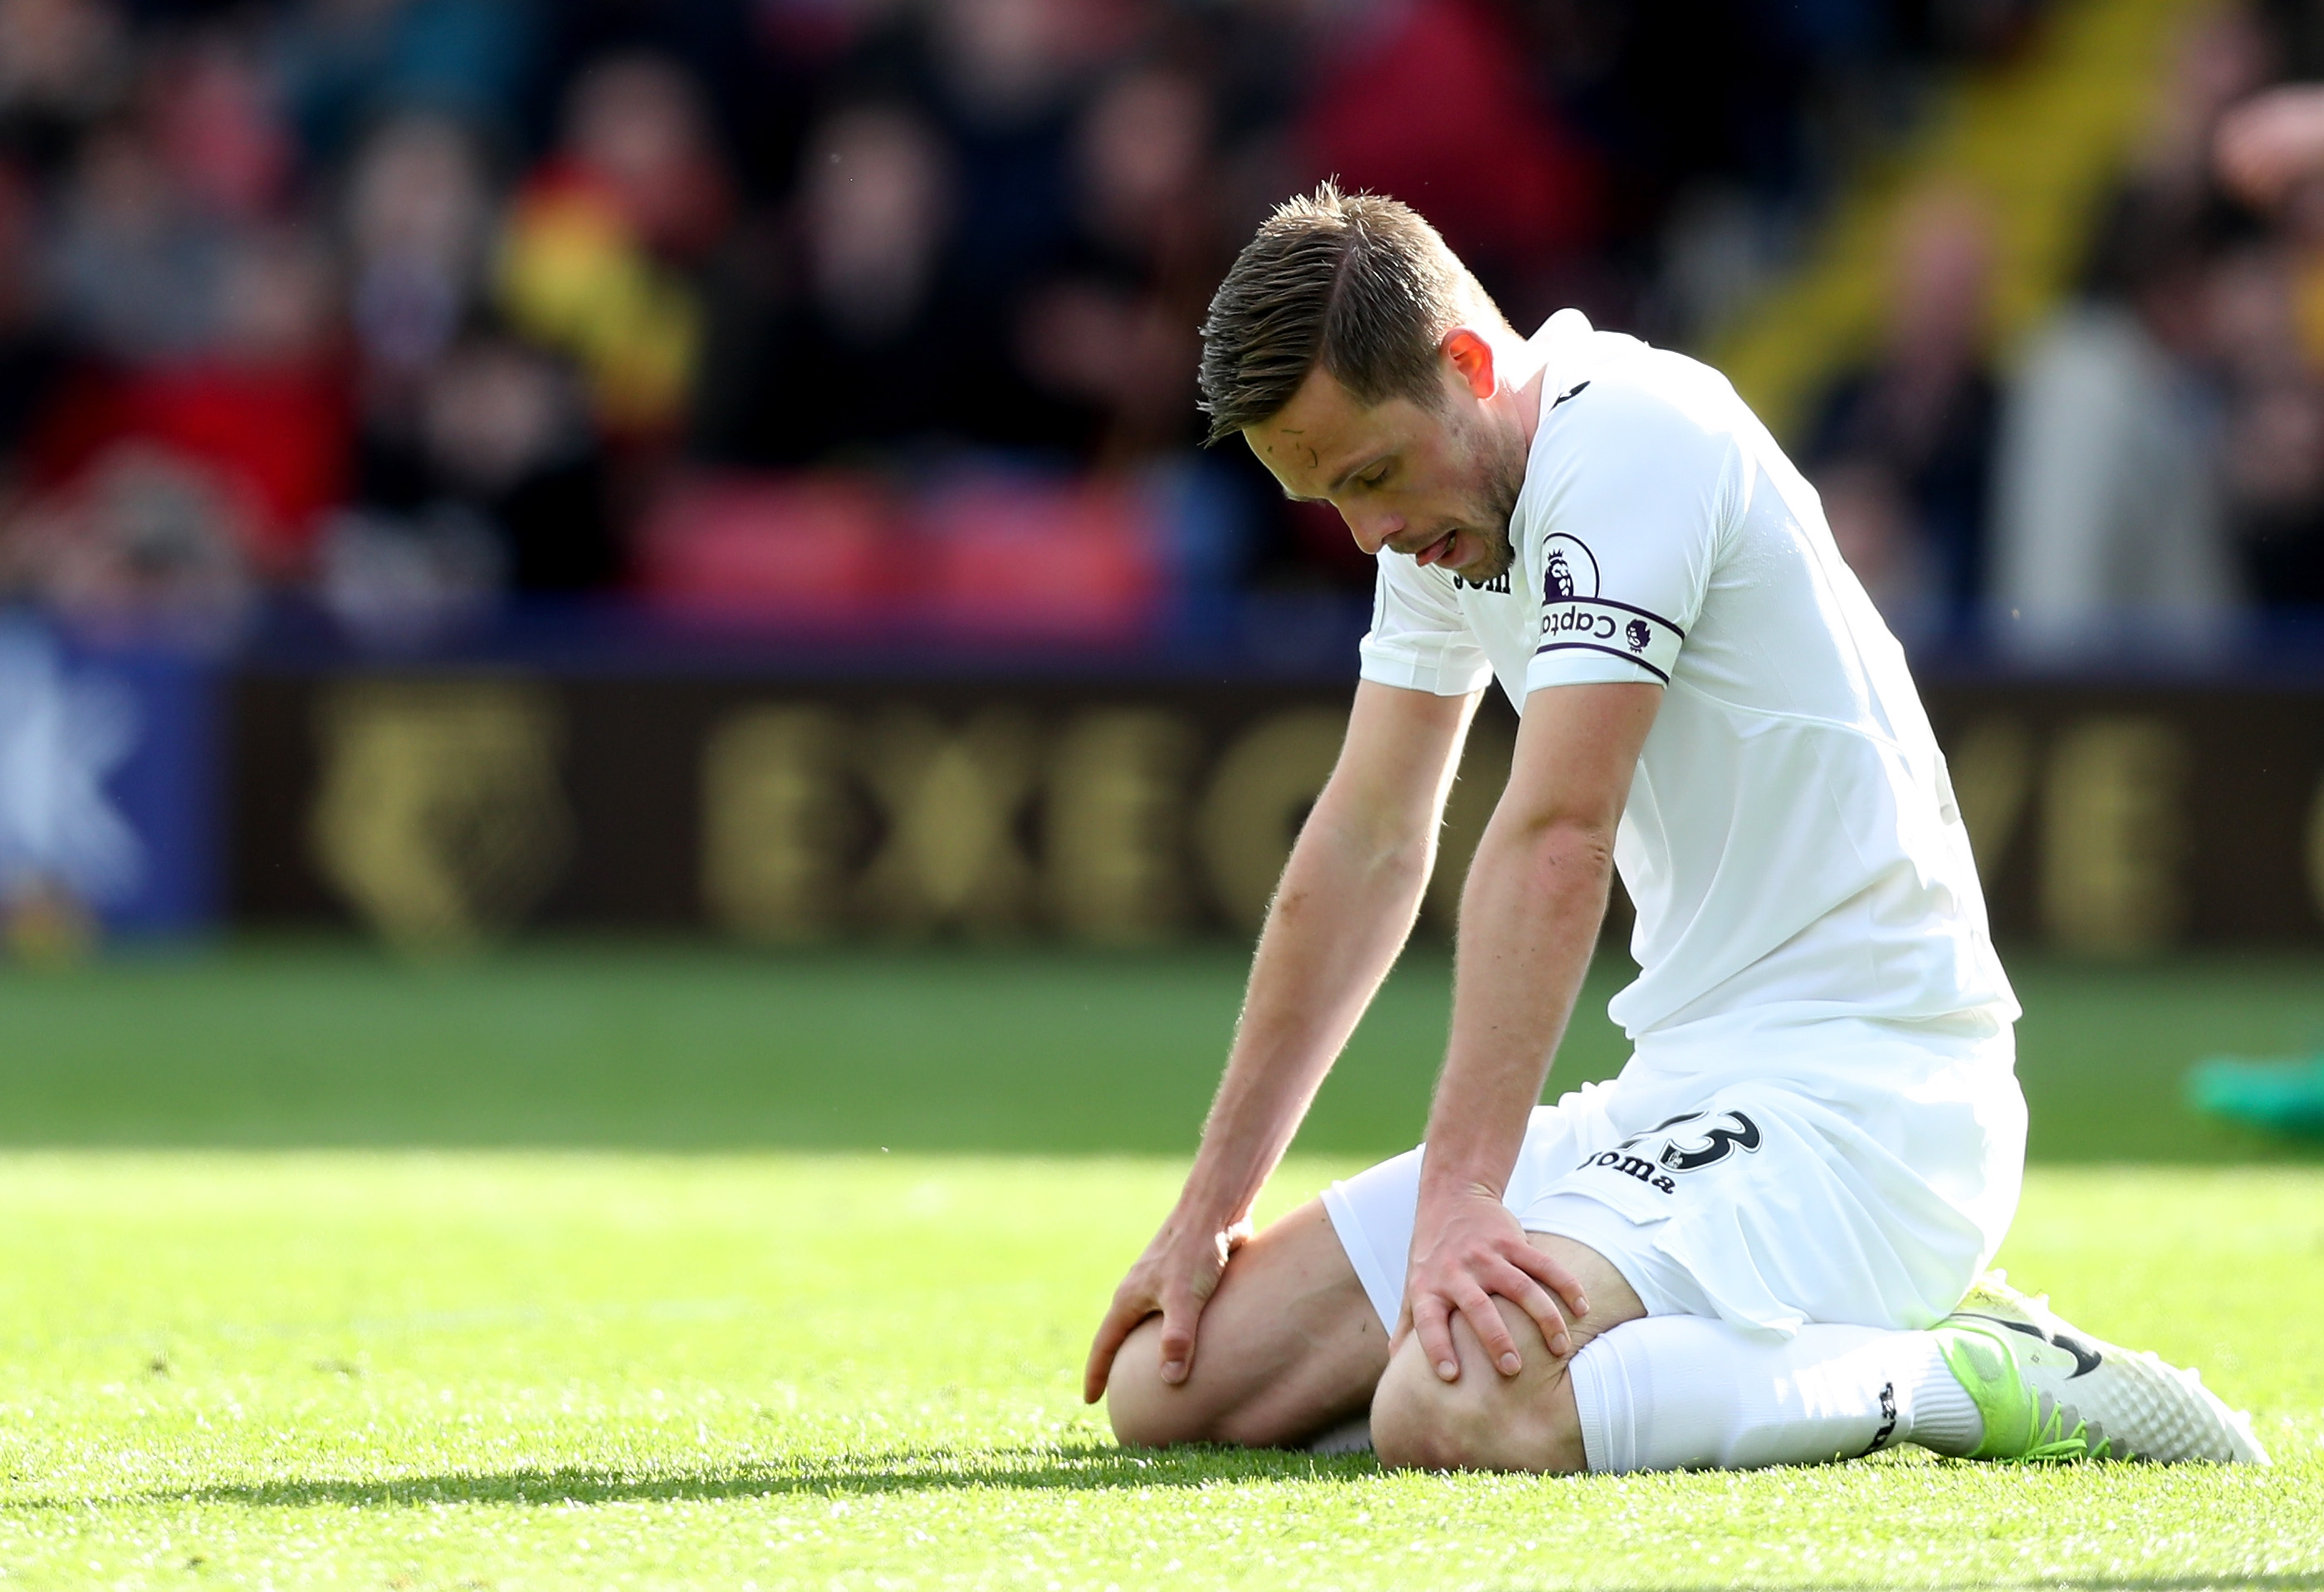 Gylfi Sigurdsson not in Swansea squad to face Southampton, says Paul Clement